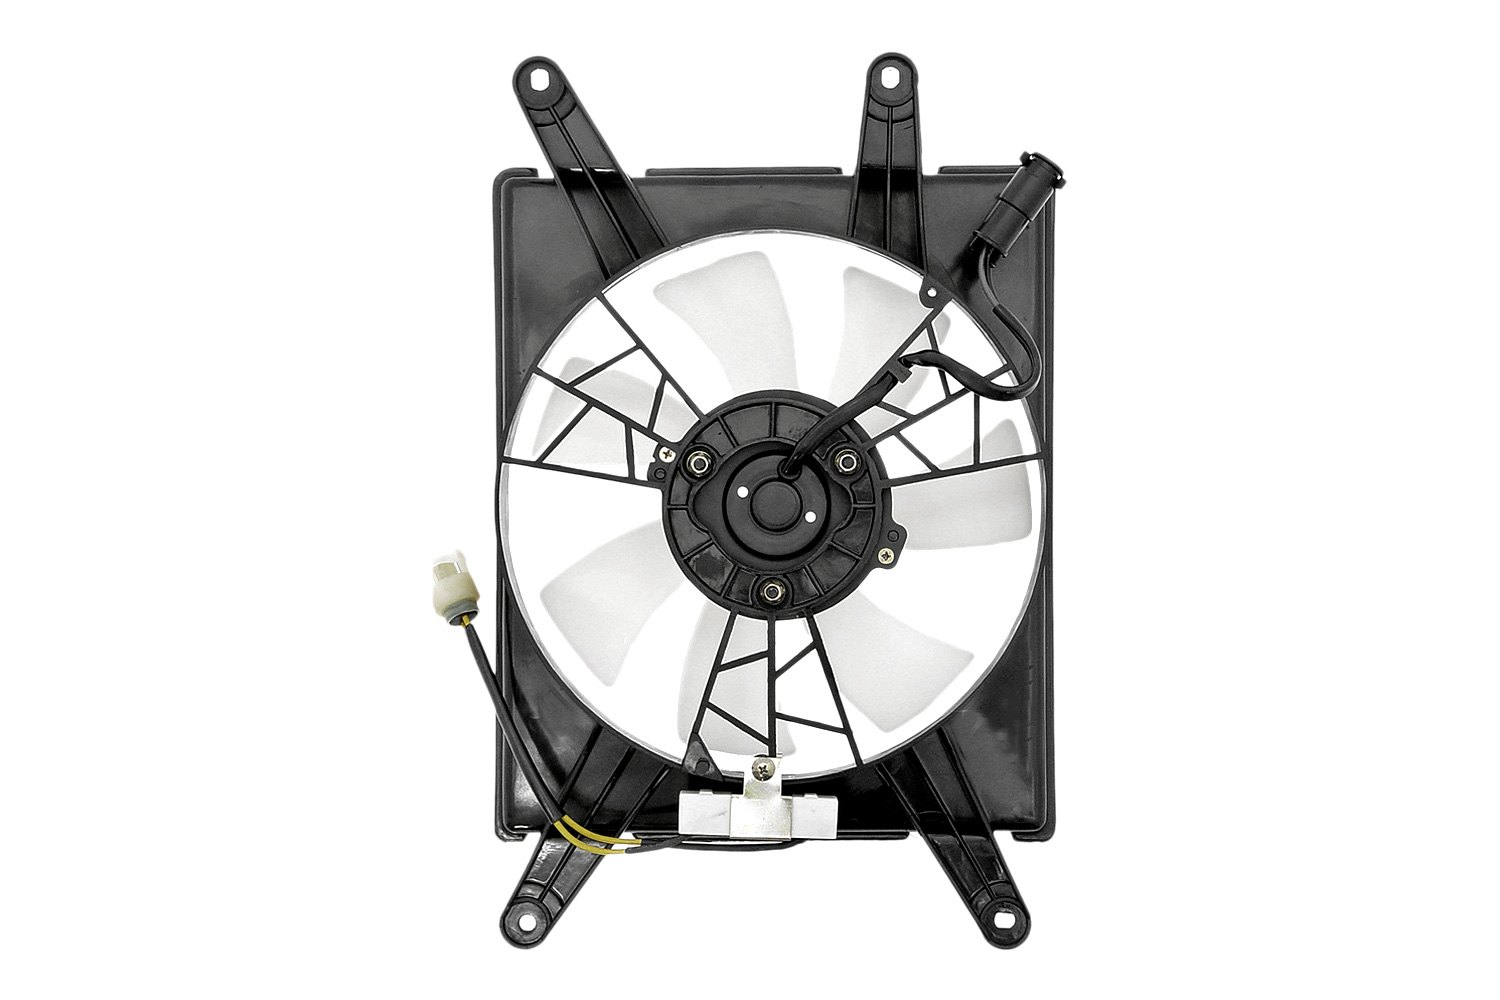 Condenser Fan Assembly How To Replace The Fan Motor On An Ac on condenser fan motor replacement arizona